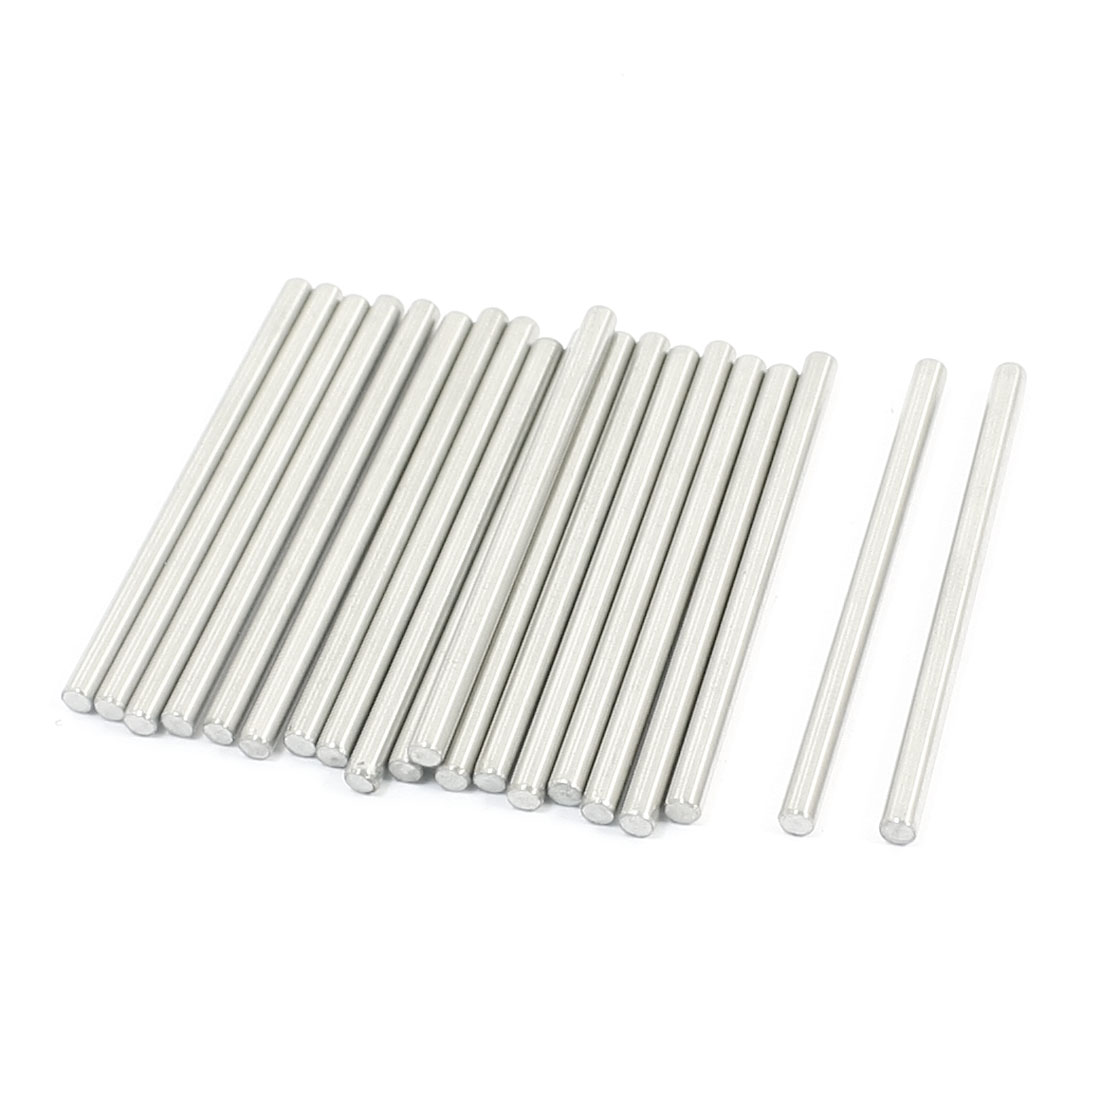 20 Pcs RC Toy Car Model Part Stainless Steel Round Rods Axles 3mm x 50mm